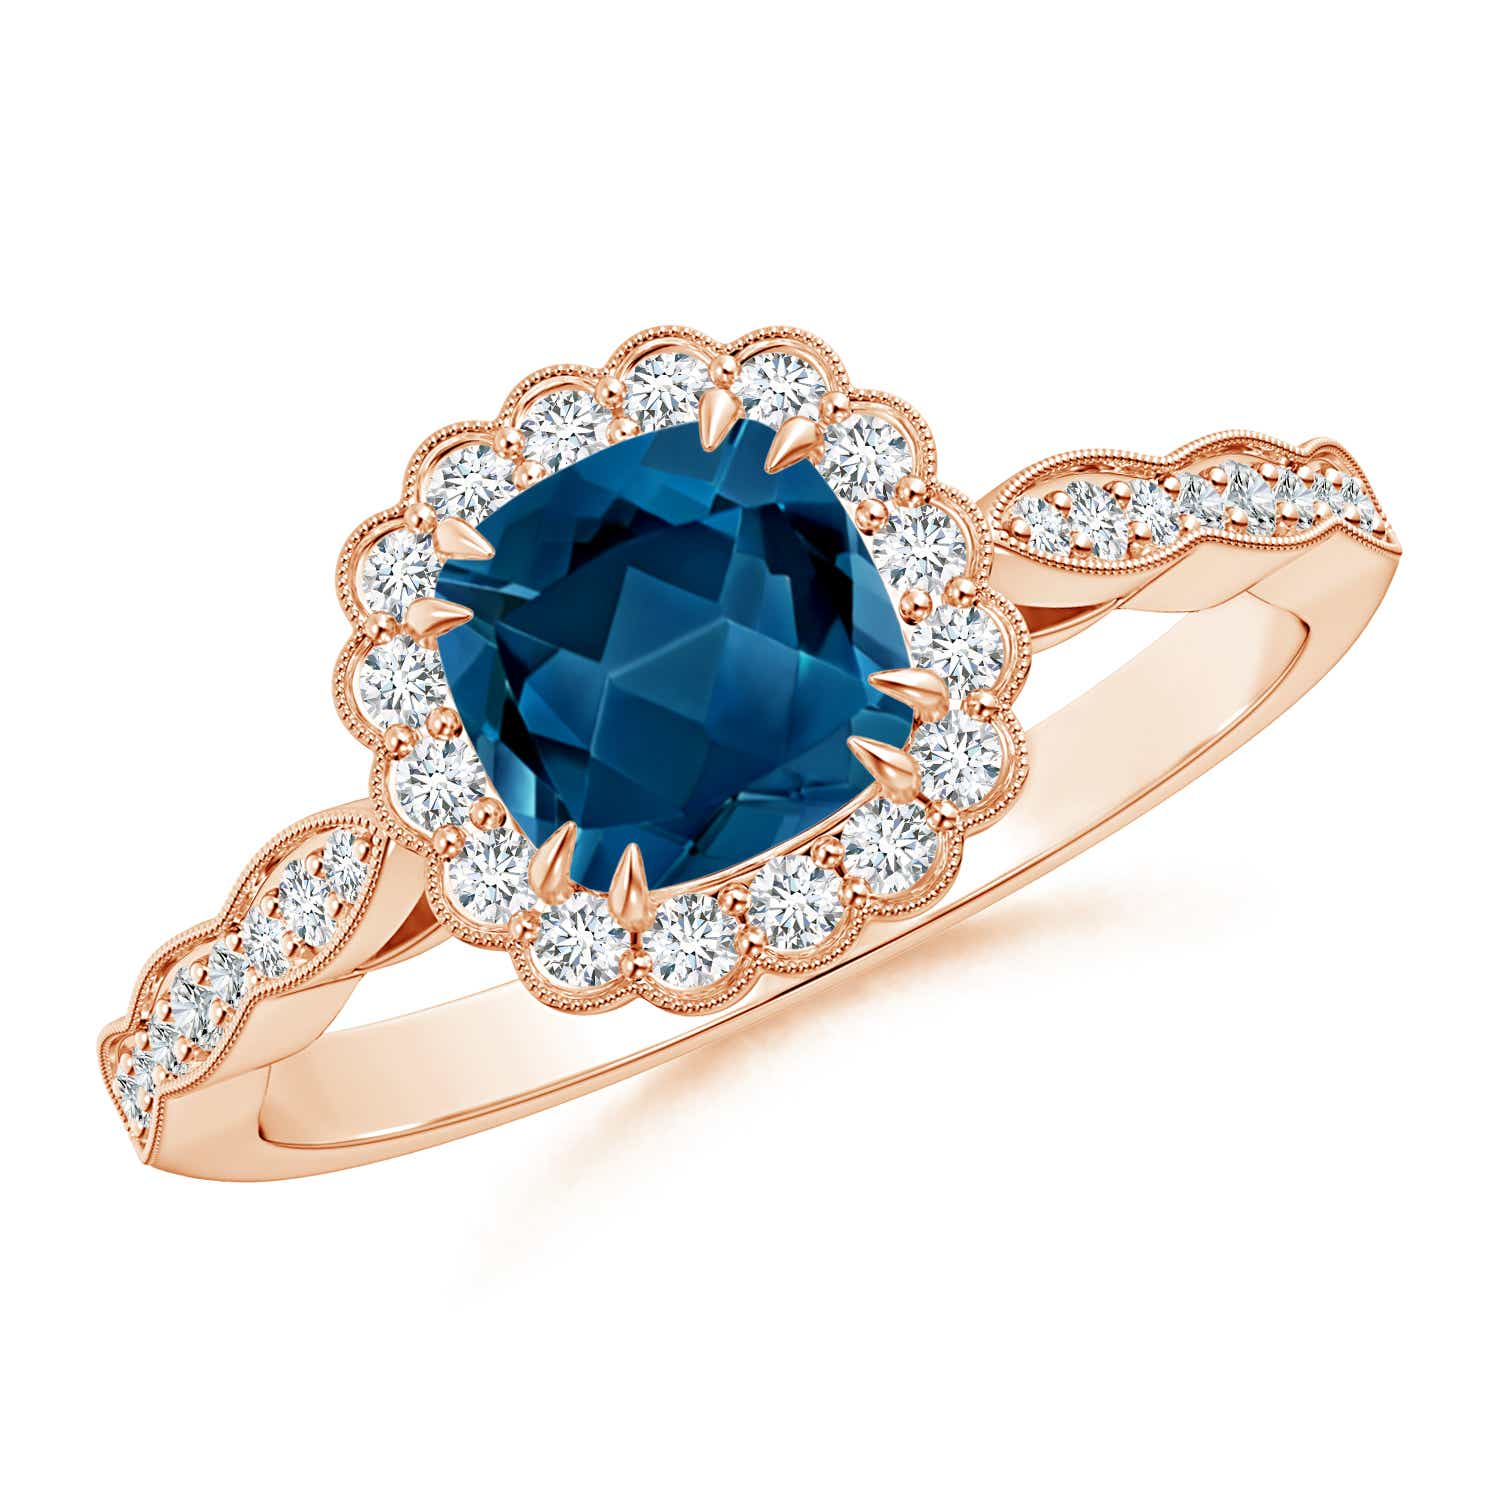 Cushion London Blue Topaz Ring with Floral Halo - Angara.com